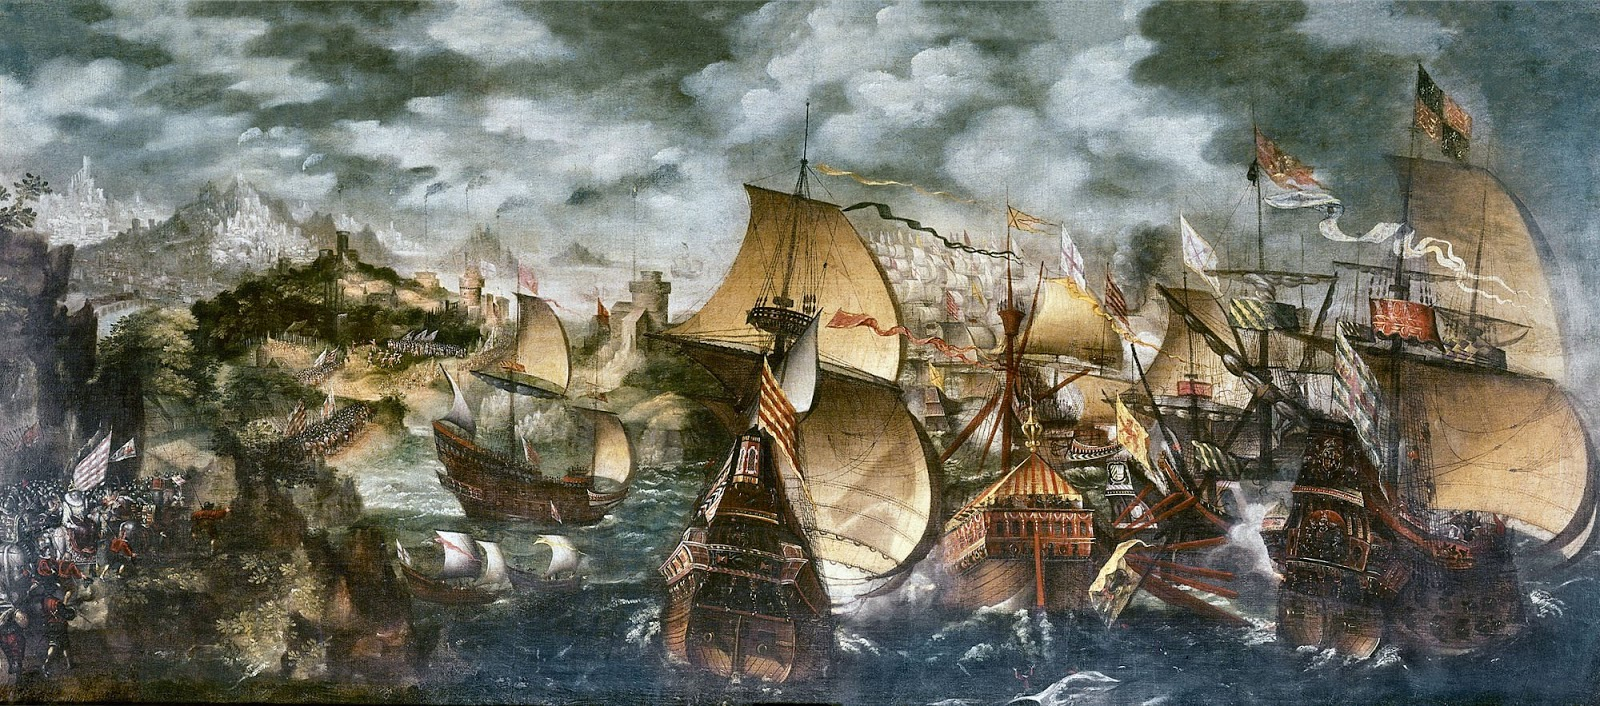 spanish armarda In may 1588 a massive invasion fleet or 'armada' sailed from the port of lisbon it was made up of 130 ships fitted with 2,500 guns they carried 30,000 soldiers and sailors this great war fleet was bound for england why is the 1588 battle with the spanish armada so famous the armada is famous.